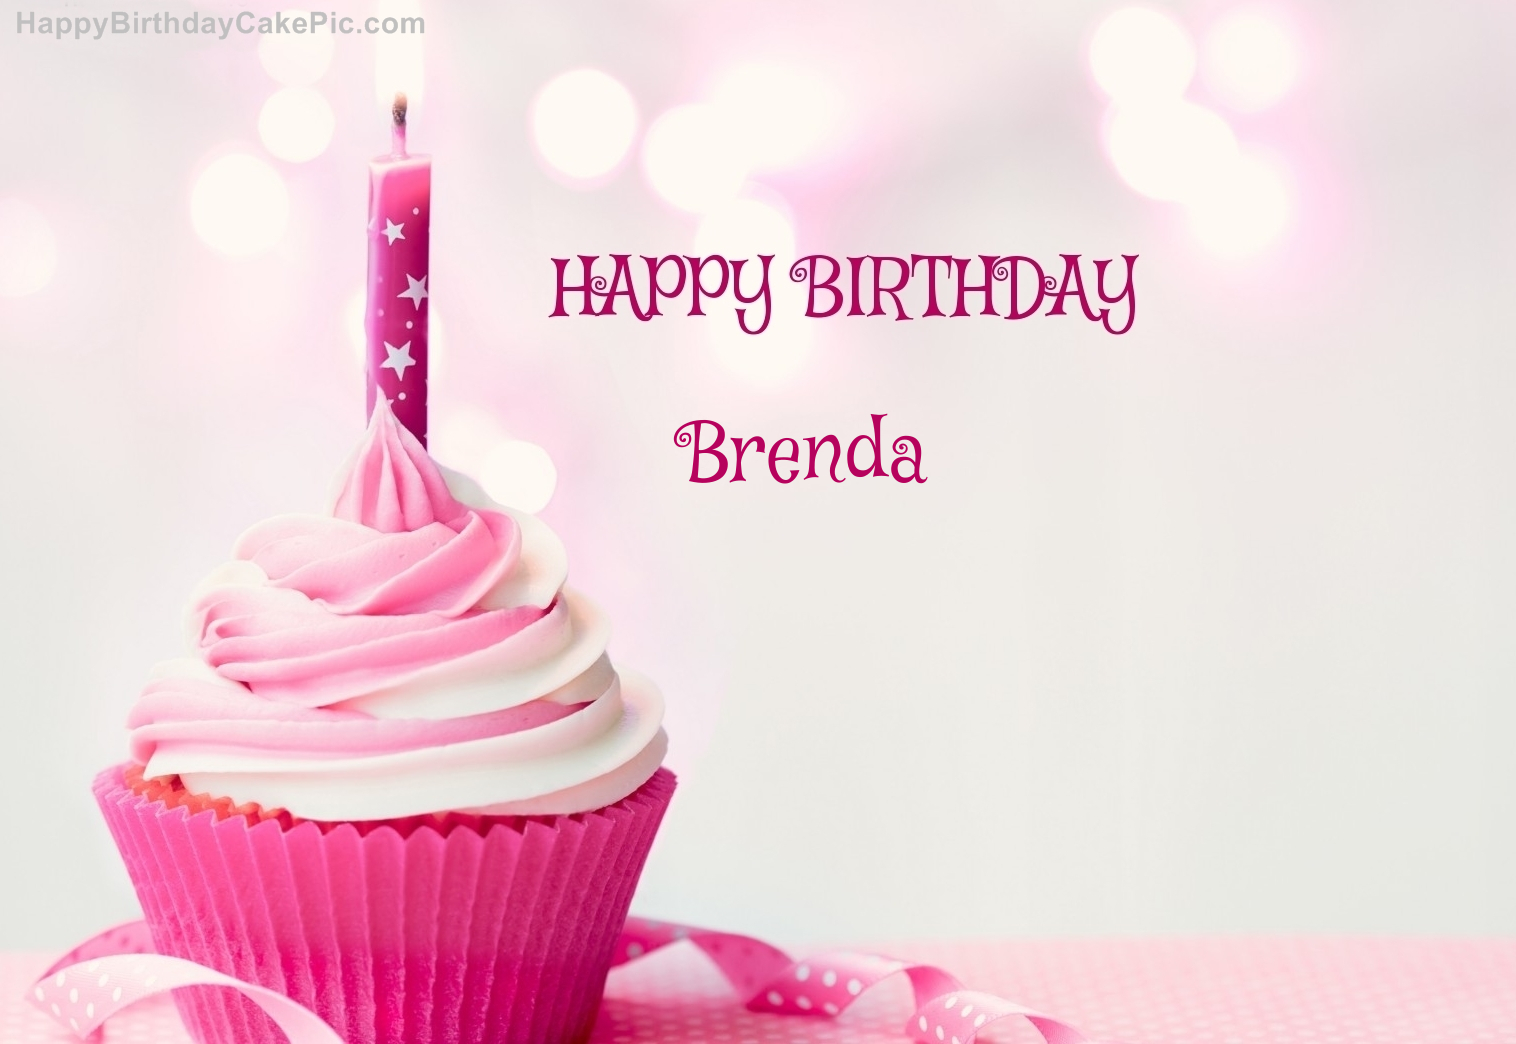 Happy birthday cupcake candle pink cake for brenda